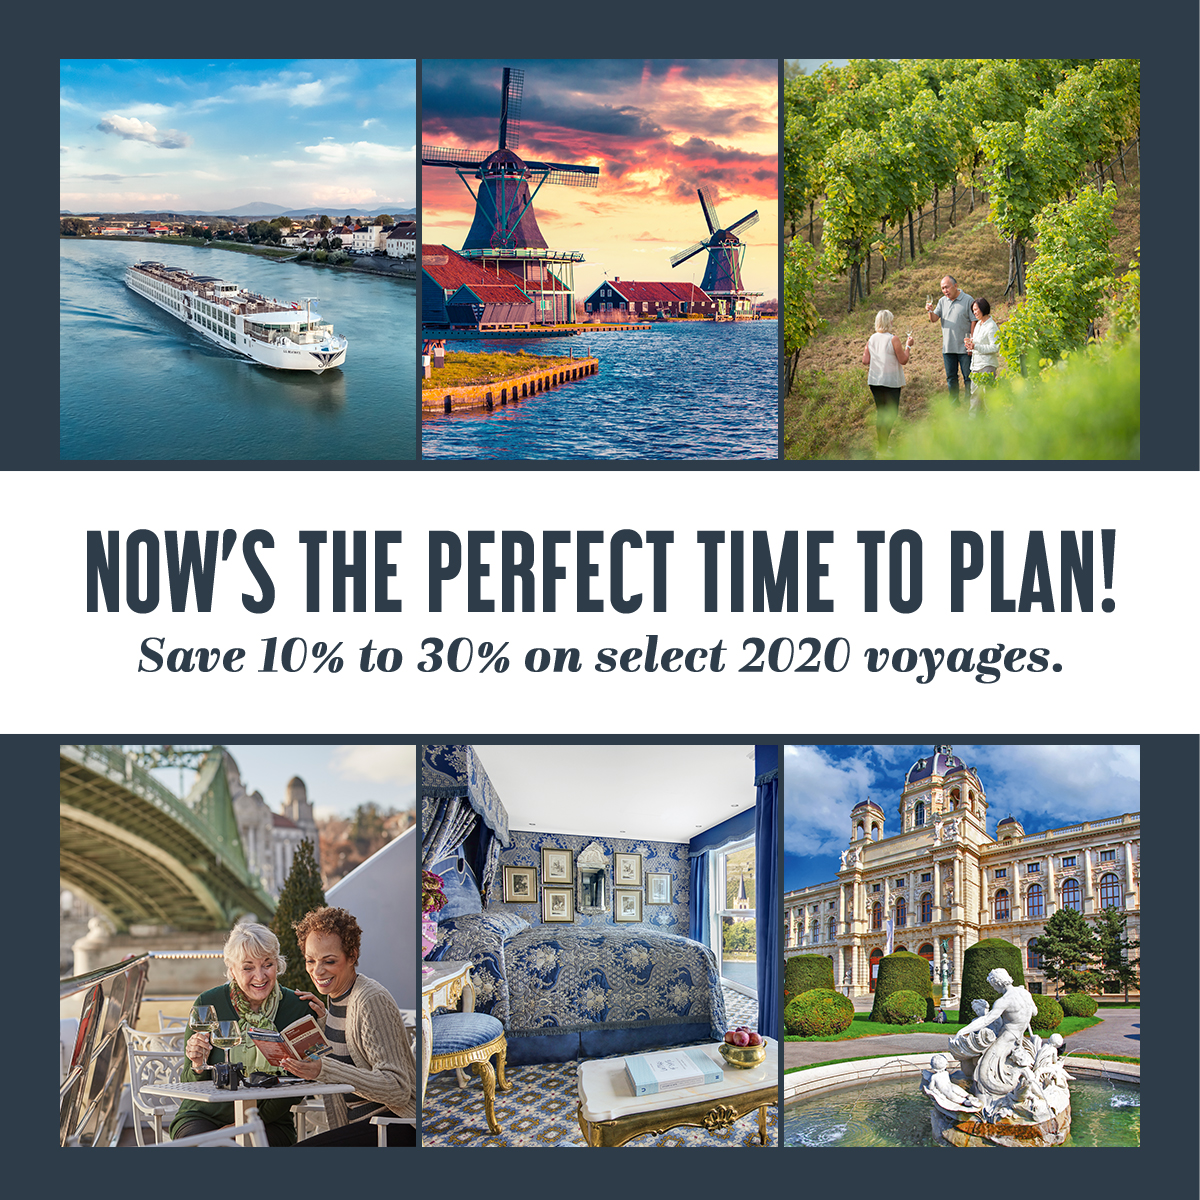 Now's the perfect time to plan!